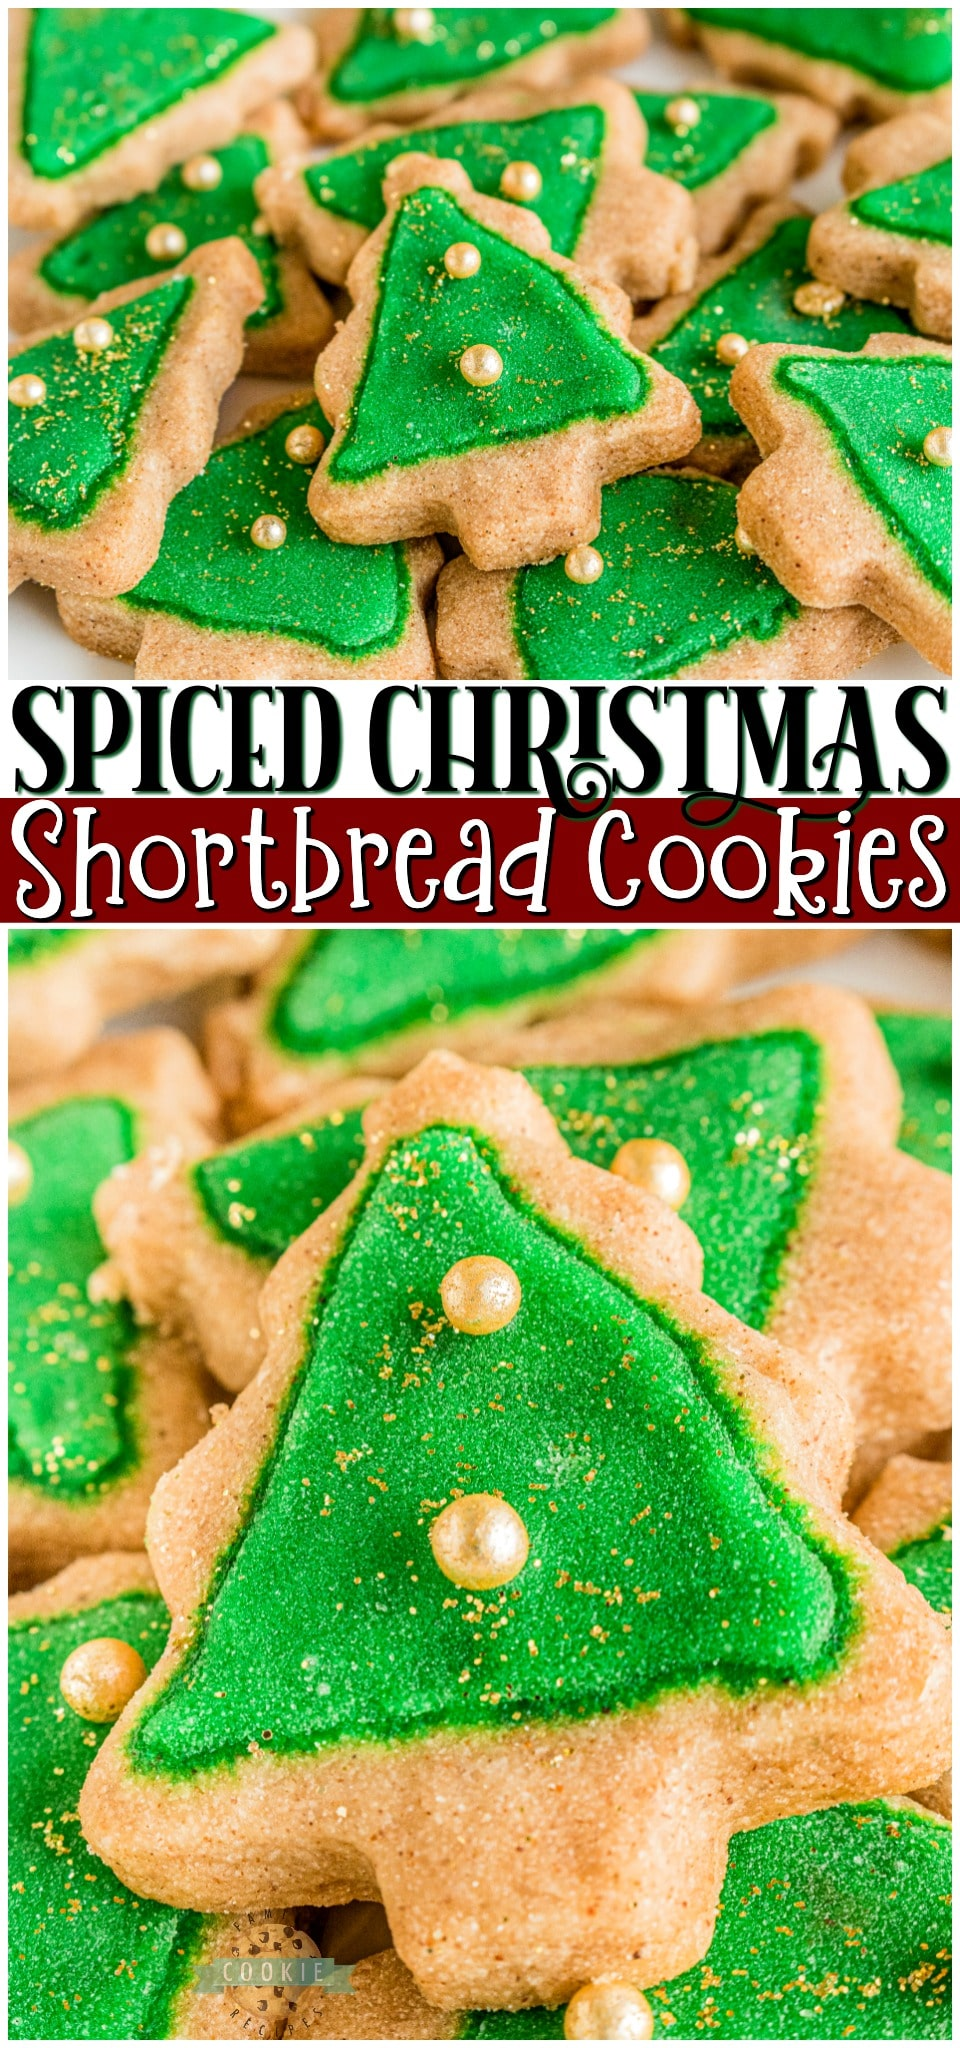 Spiced Christmas Shortbread Cookies made with cinnamon & allspice in the dough and topped with a simple icing recipe for perfect Christmas cookies! Buttery shortbread cookies with great flavor & texture for holiday baking. #Christmas #shortbread #cookies #baking #cinnamon #cookierecipe #holidaybaking from FAMILY COOKIE RECIPES via @familycookierecipes